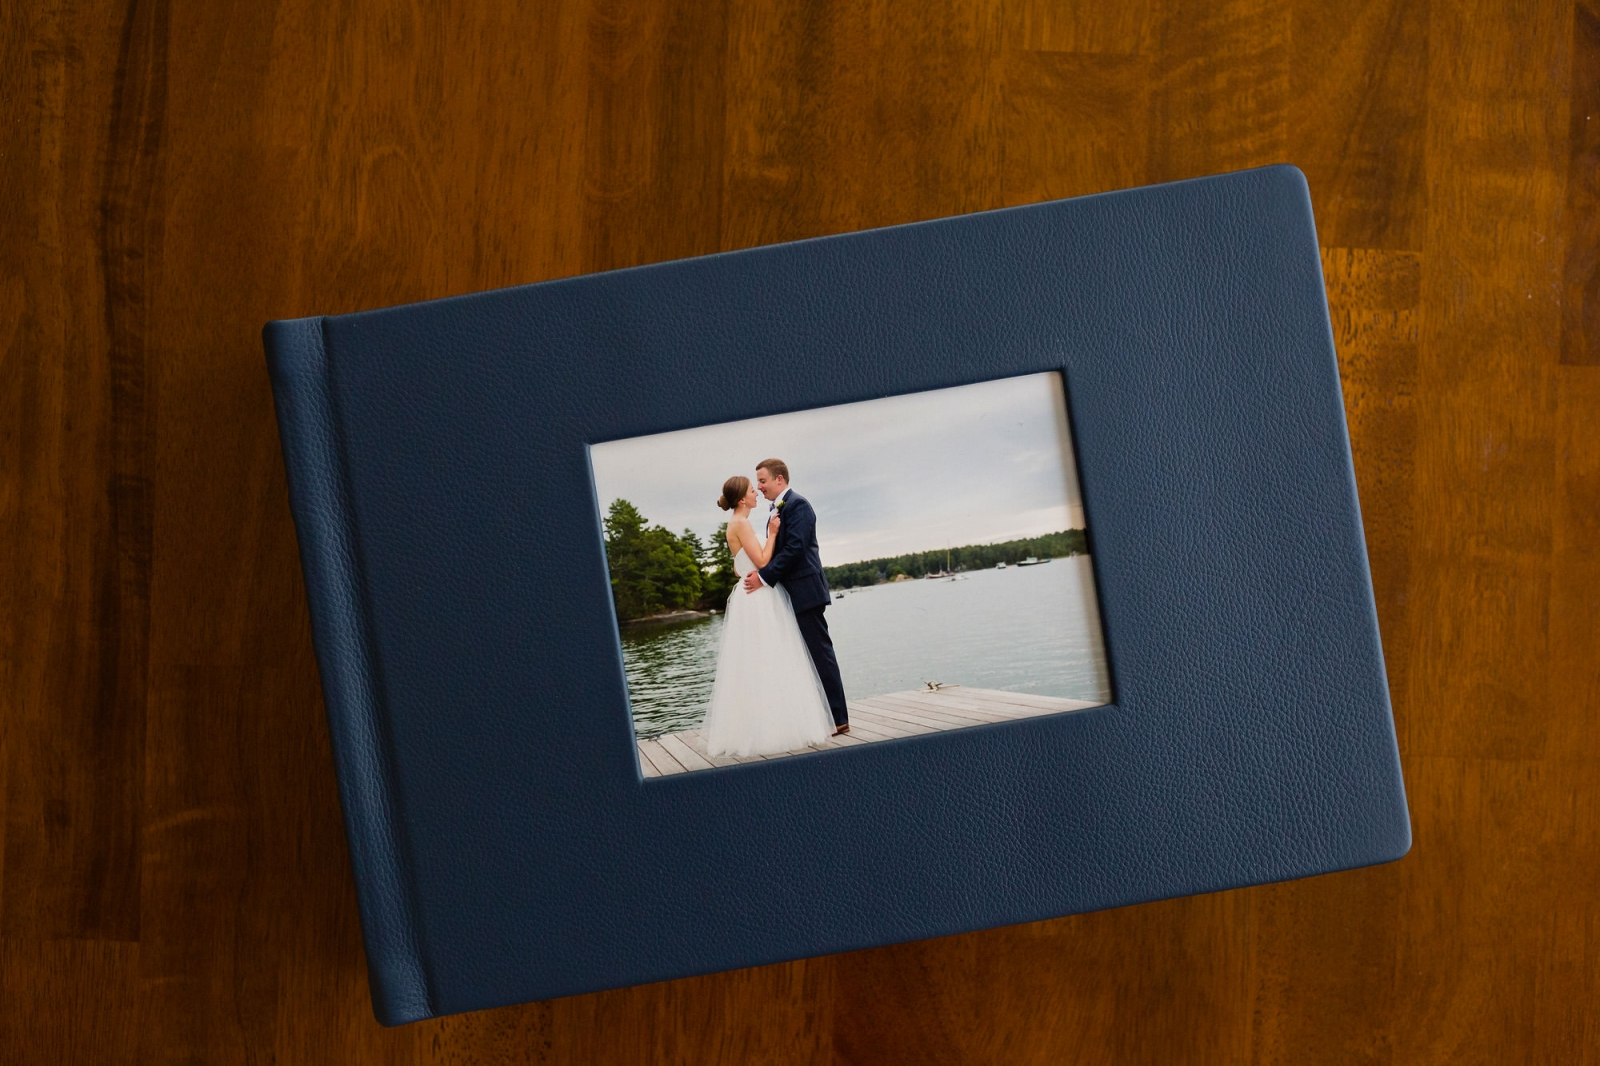 maine-wedding-albums-kc (1)